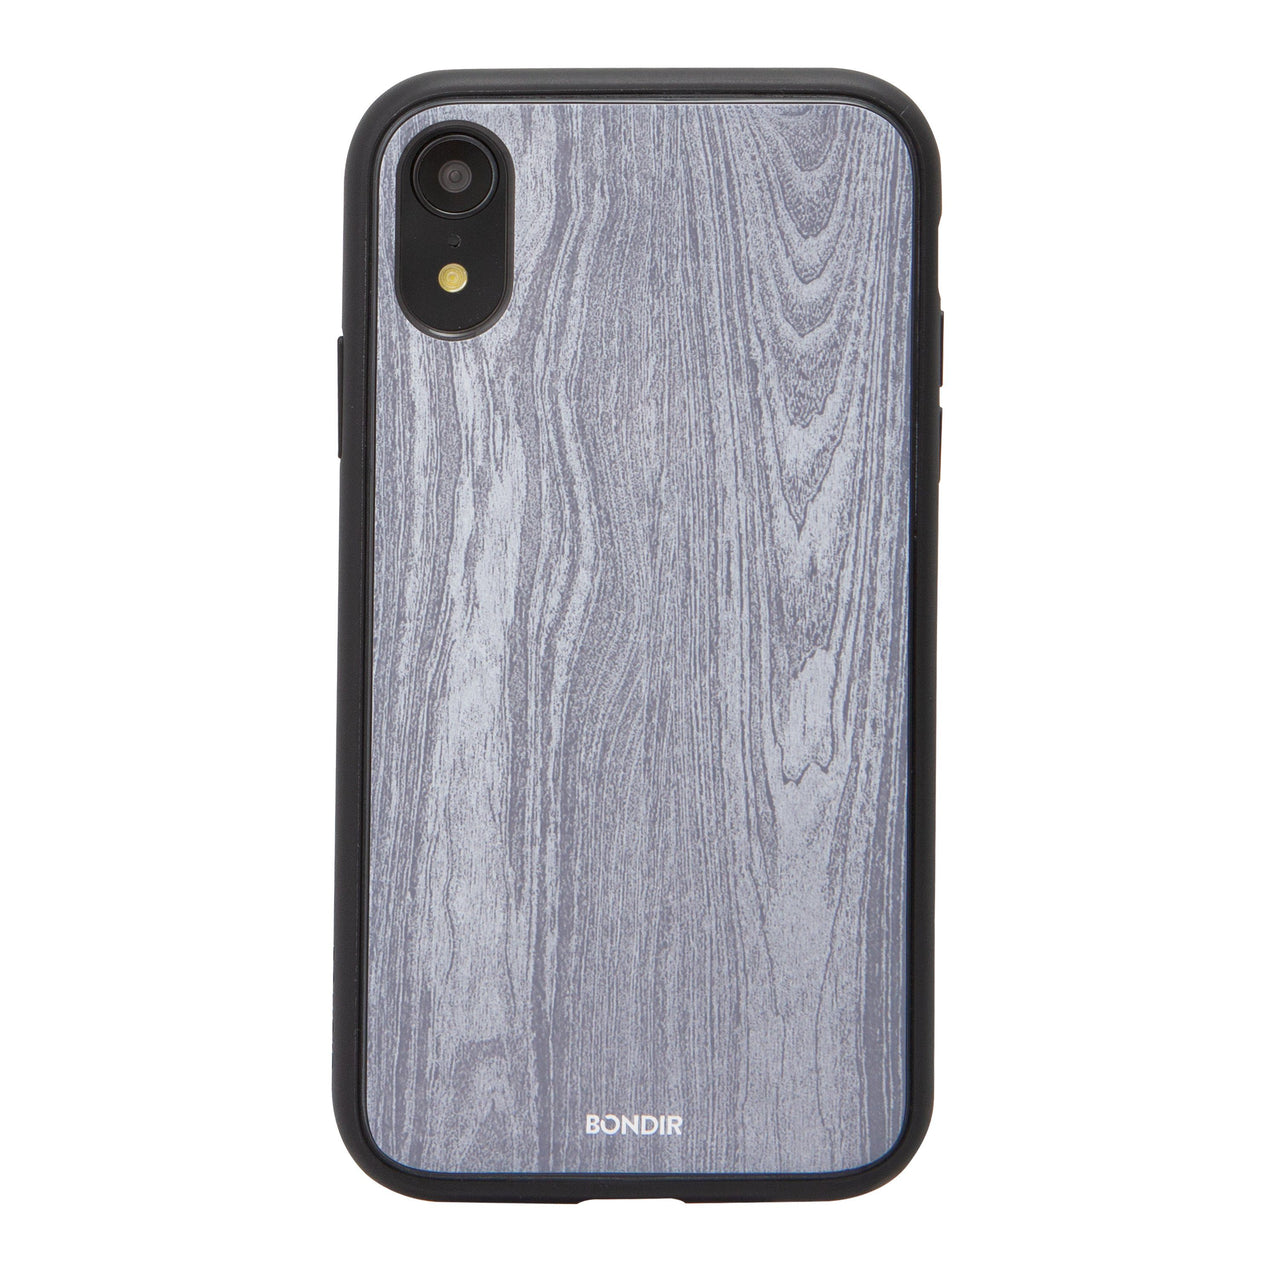 Case - Wood Grain Case, IPhone XR